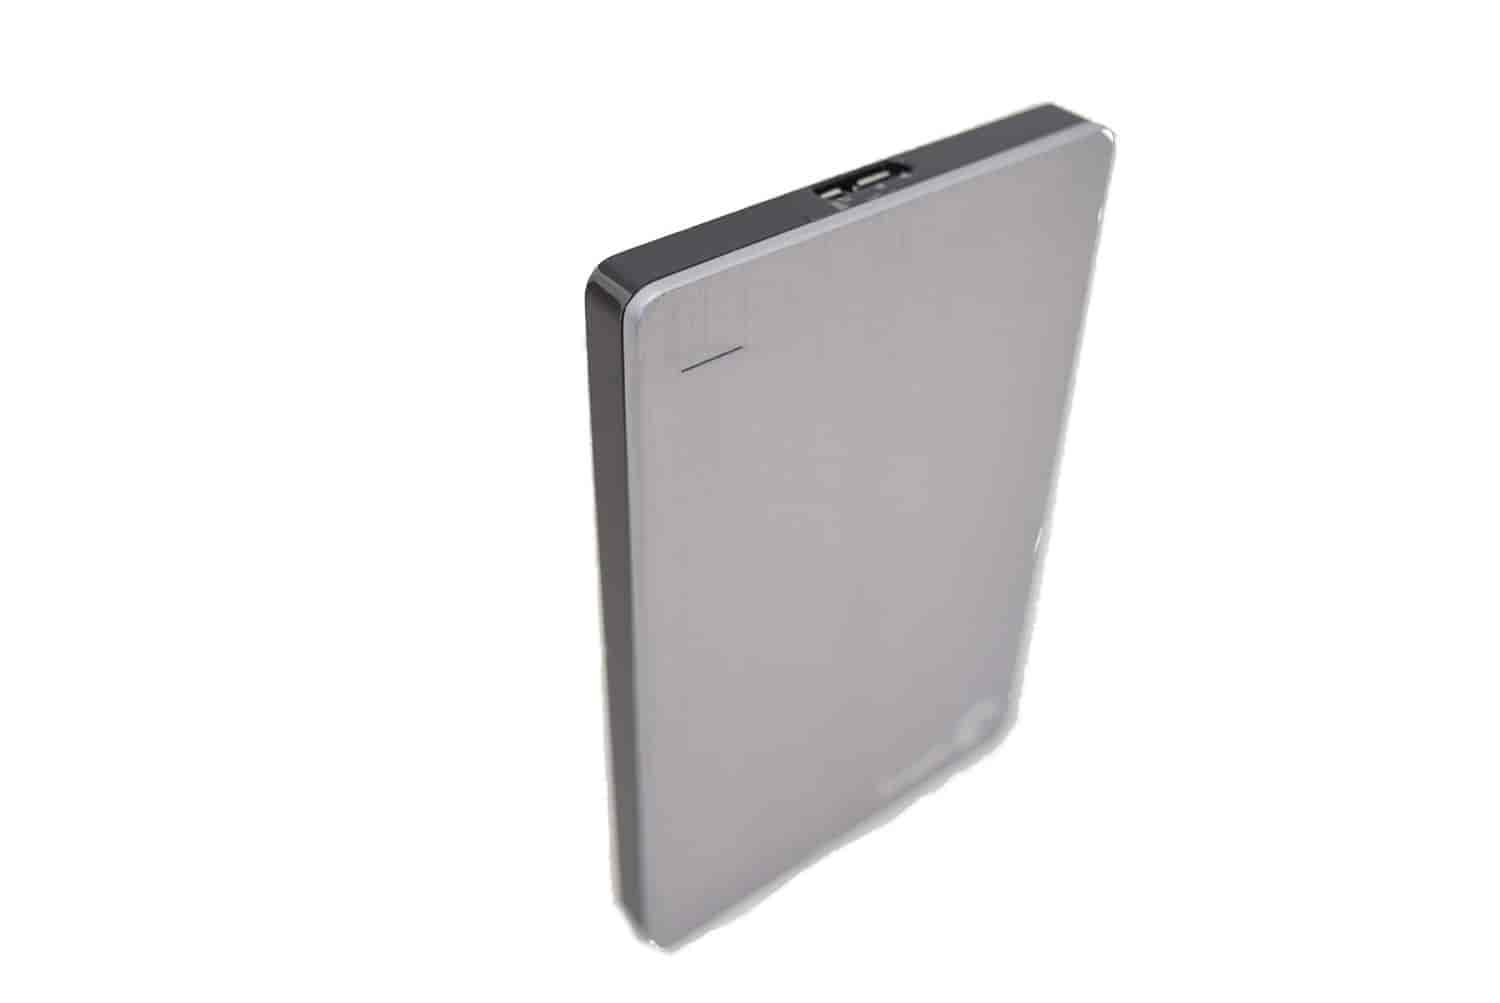 Buy Seagate 1tb Backup Plus Slim Portable Hard Drive Silver Hdd Stdr1000301